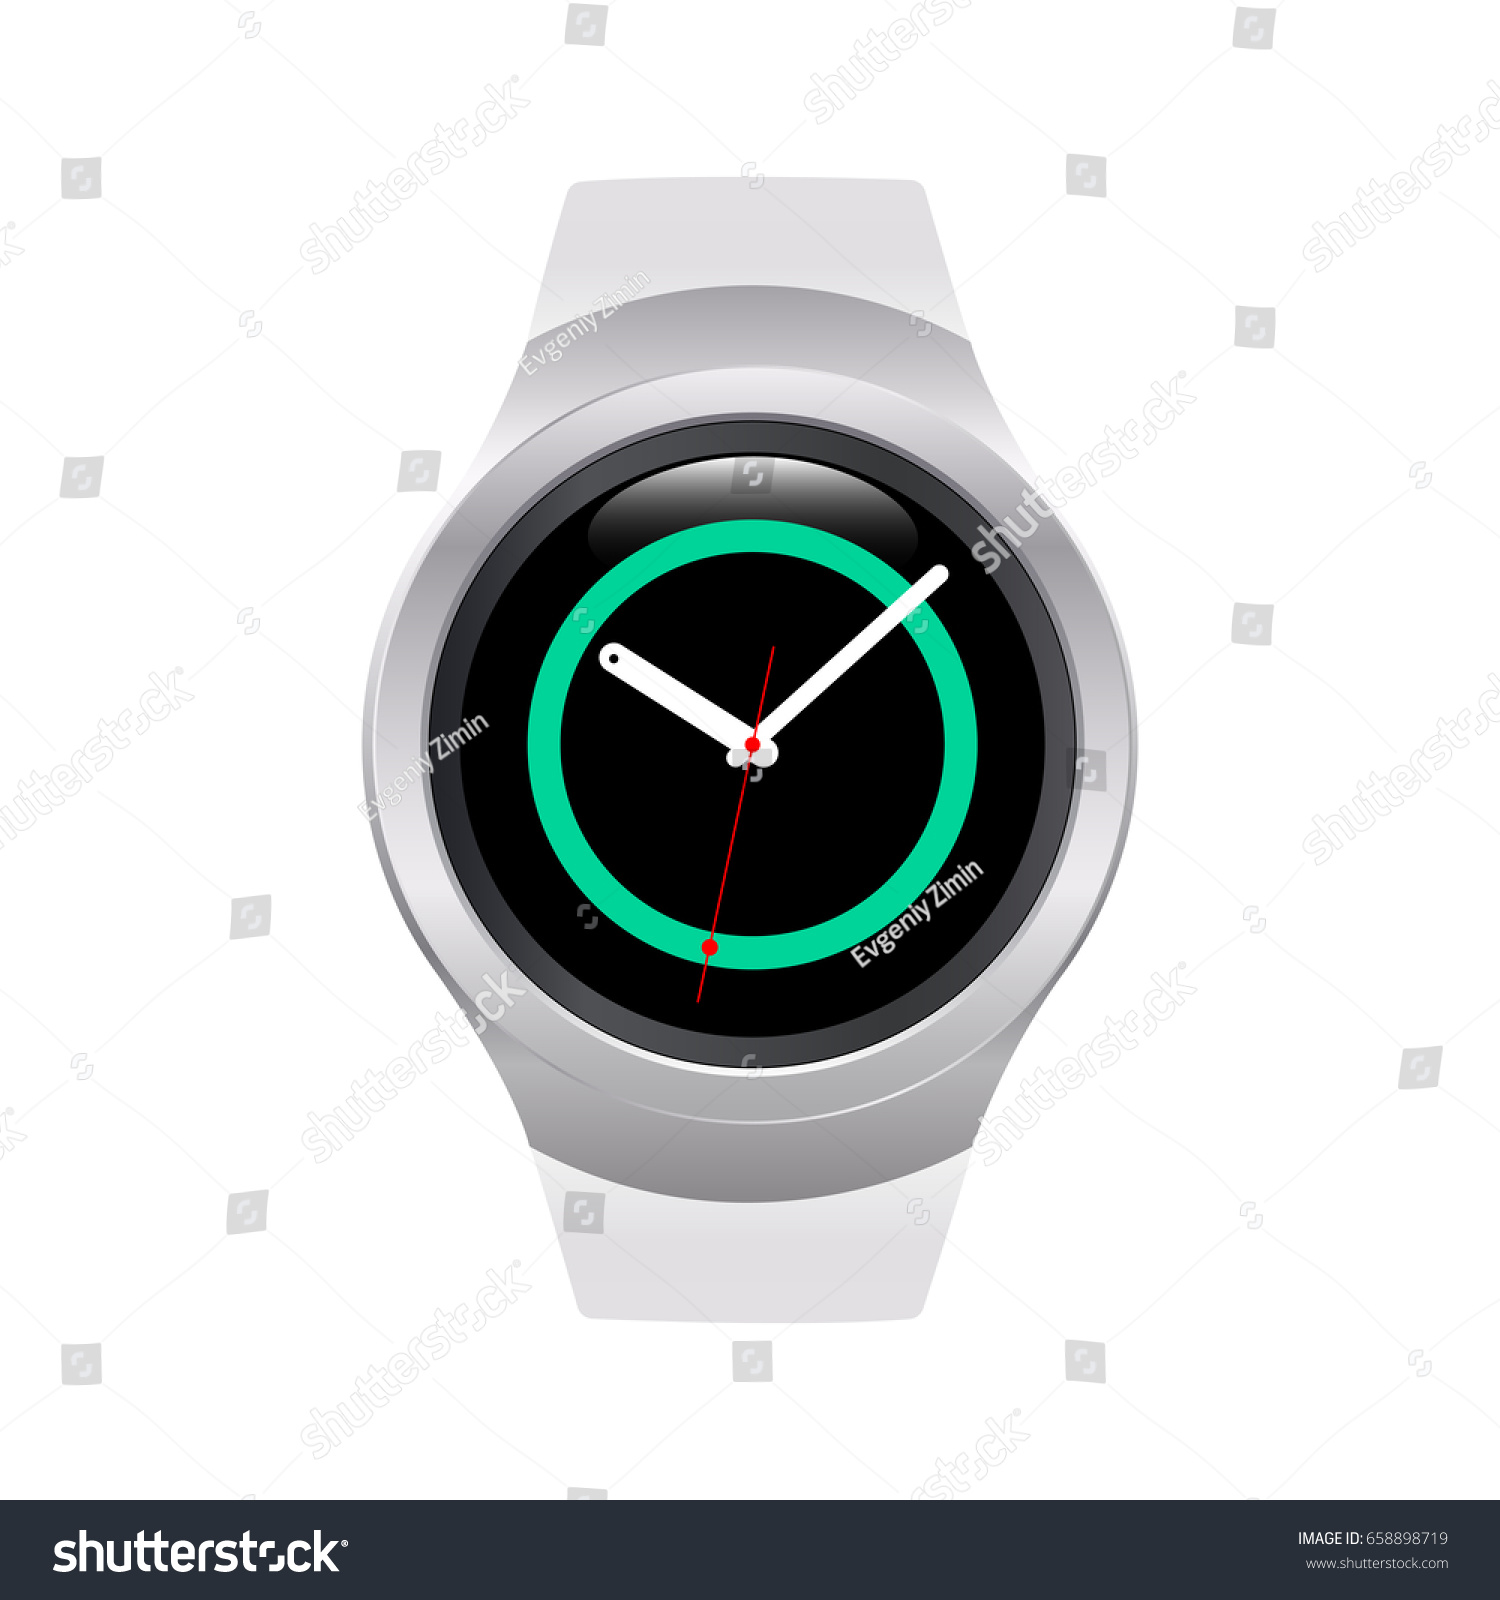 get you samsung your faces infinity gear should first watches new for watch watchfaces smartwatches